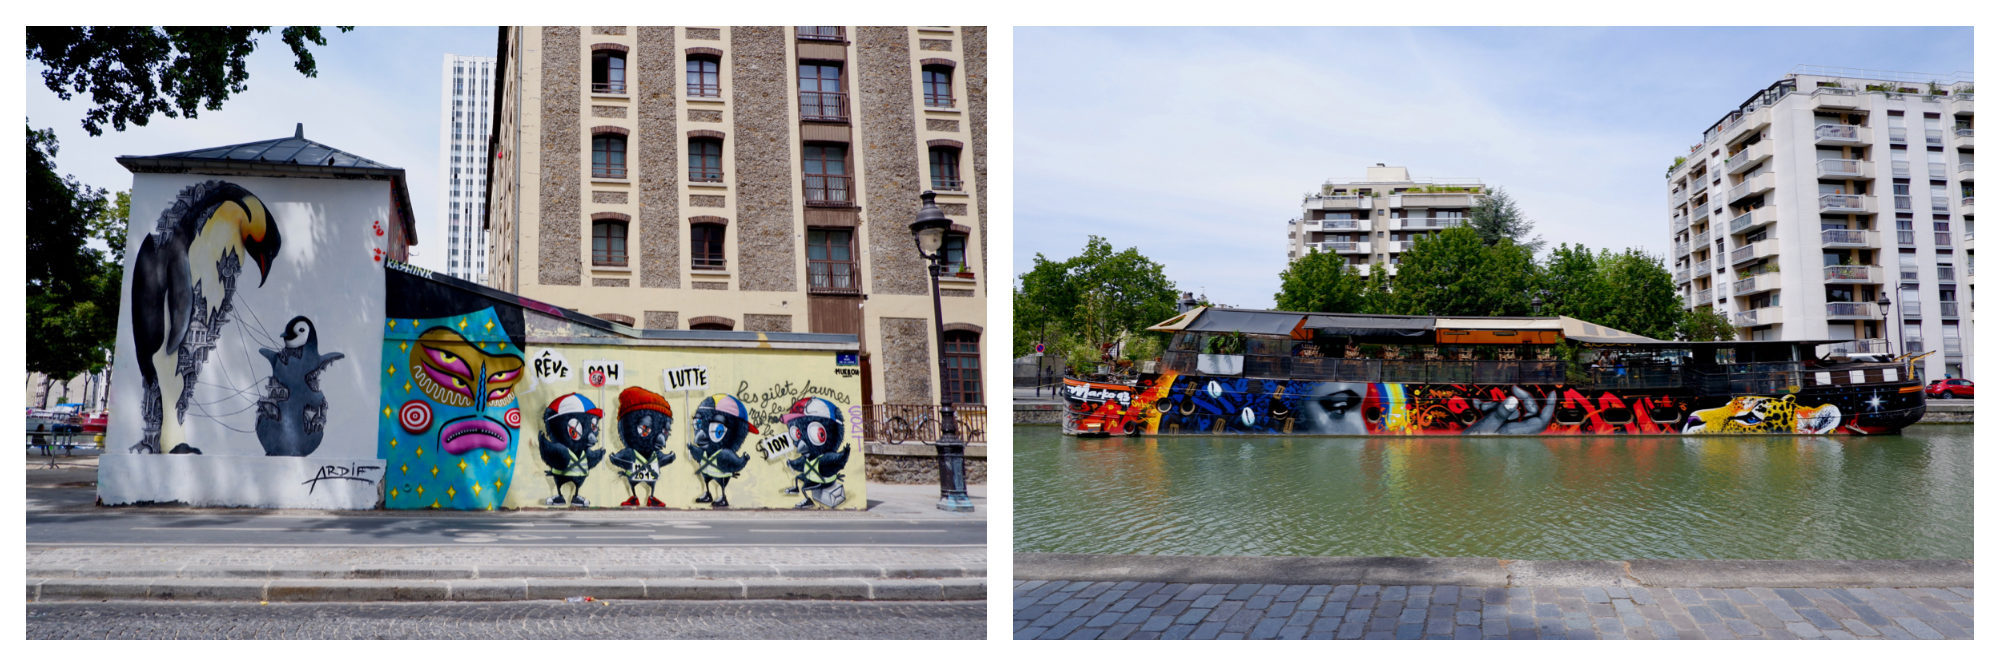 The bold and colorful street art along the canal (left) even extends to the barges (right), creates a unique ambiance.